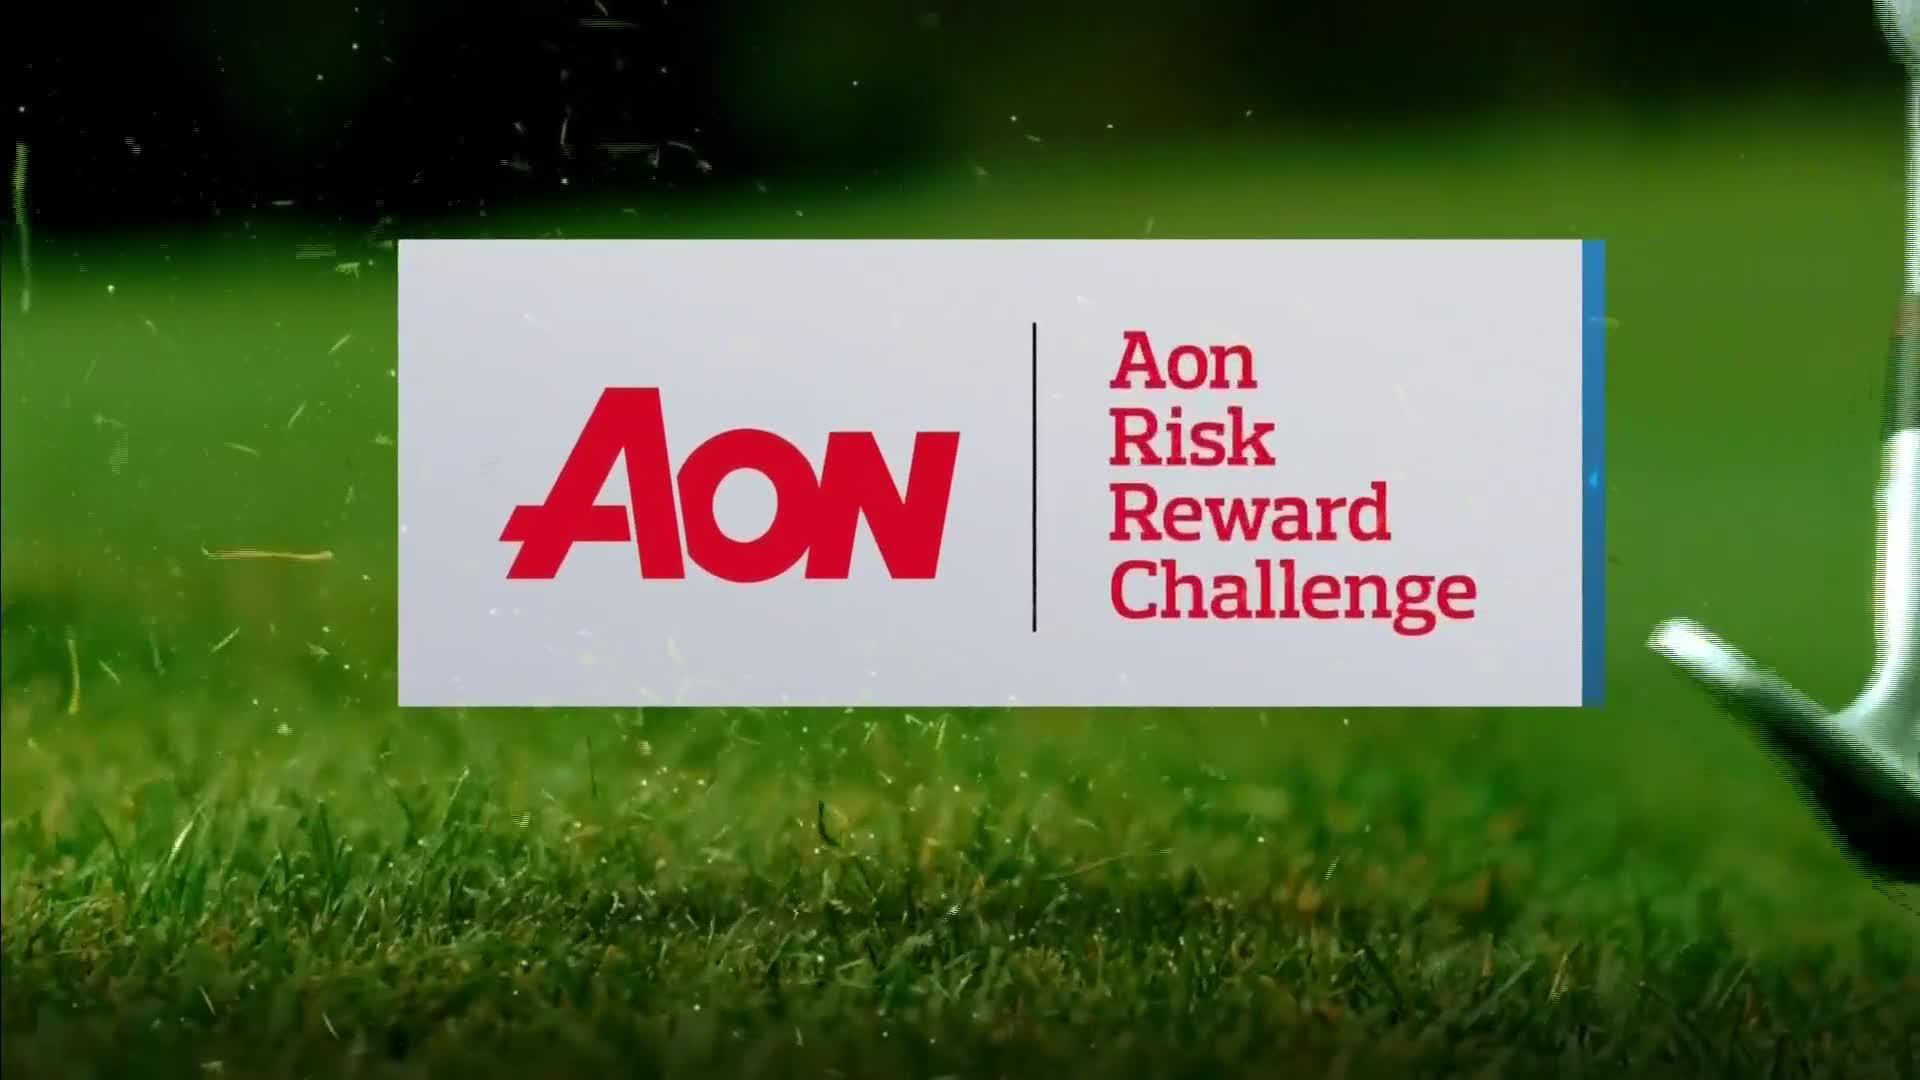 Aon Risk Reward Challenge Hole at the 2021 Cambia Portland Classic – Final Round